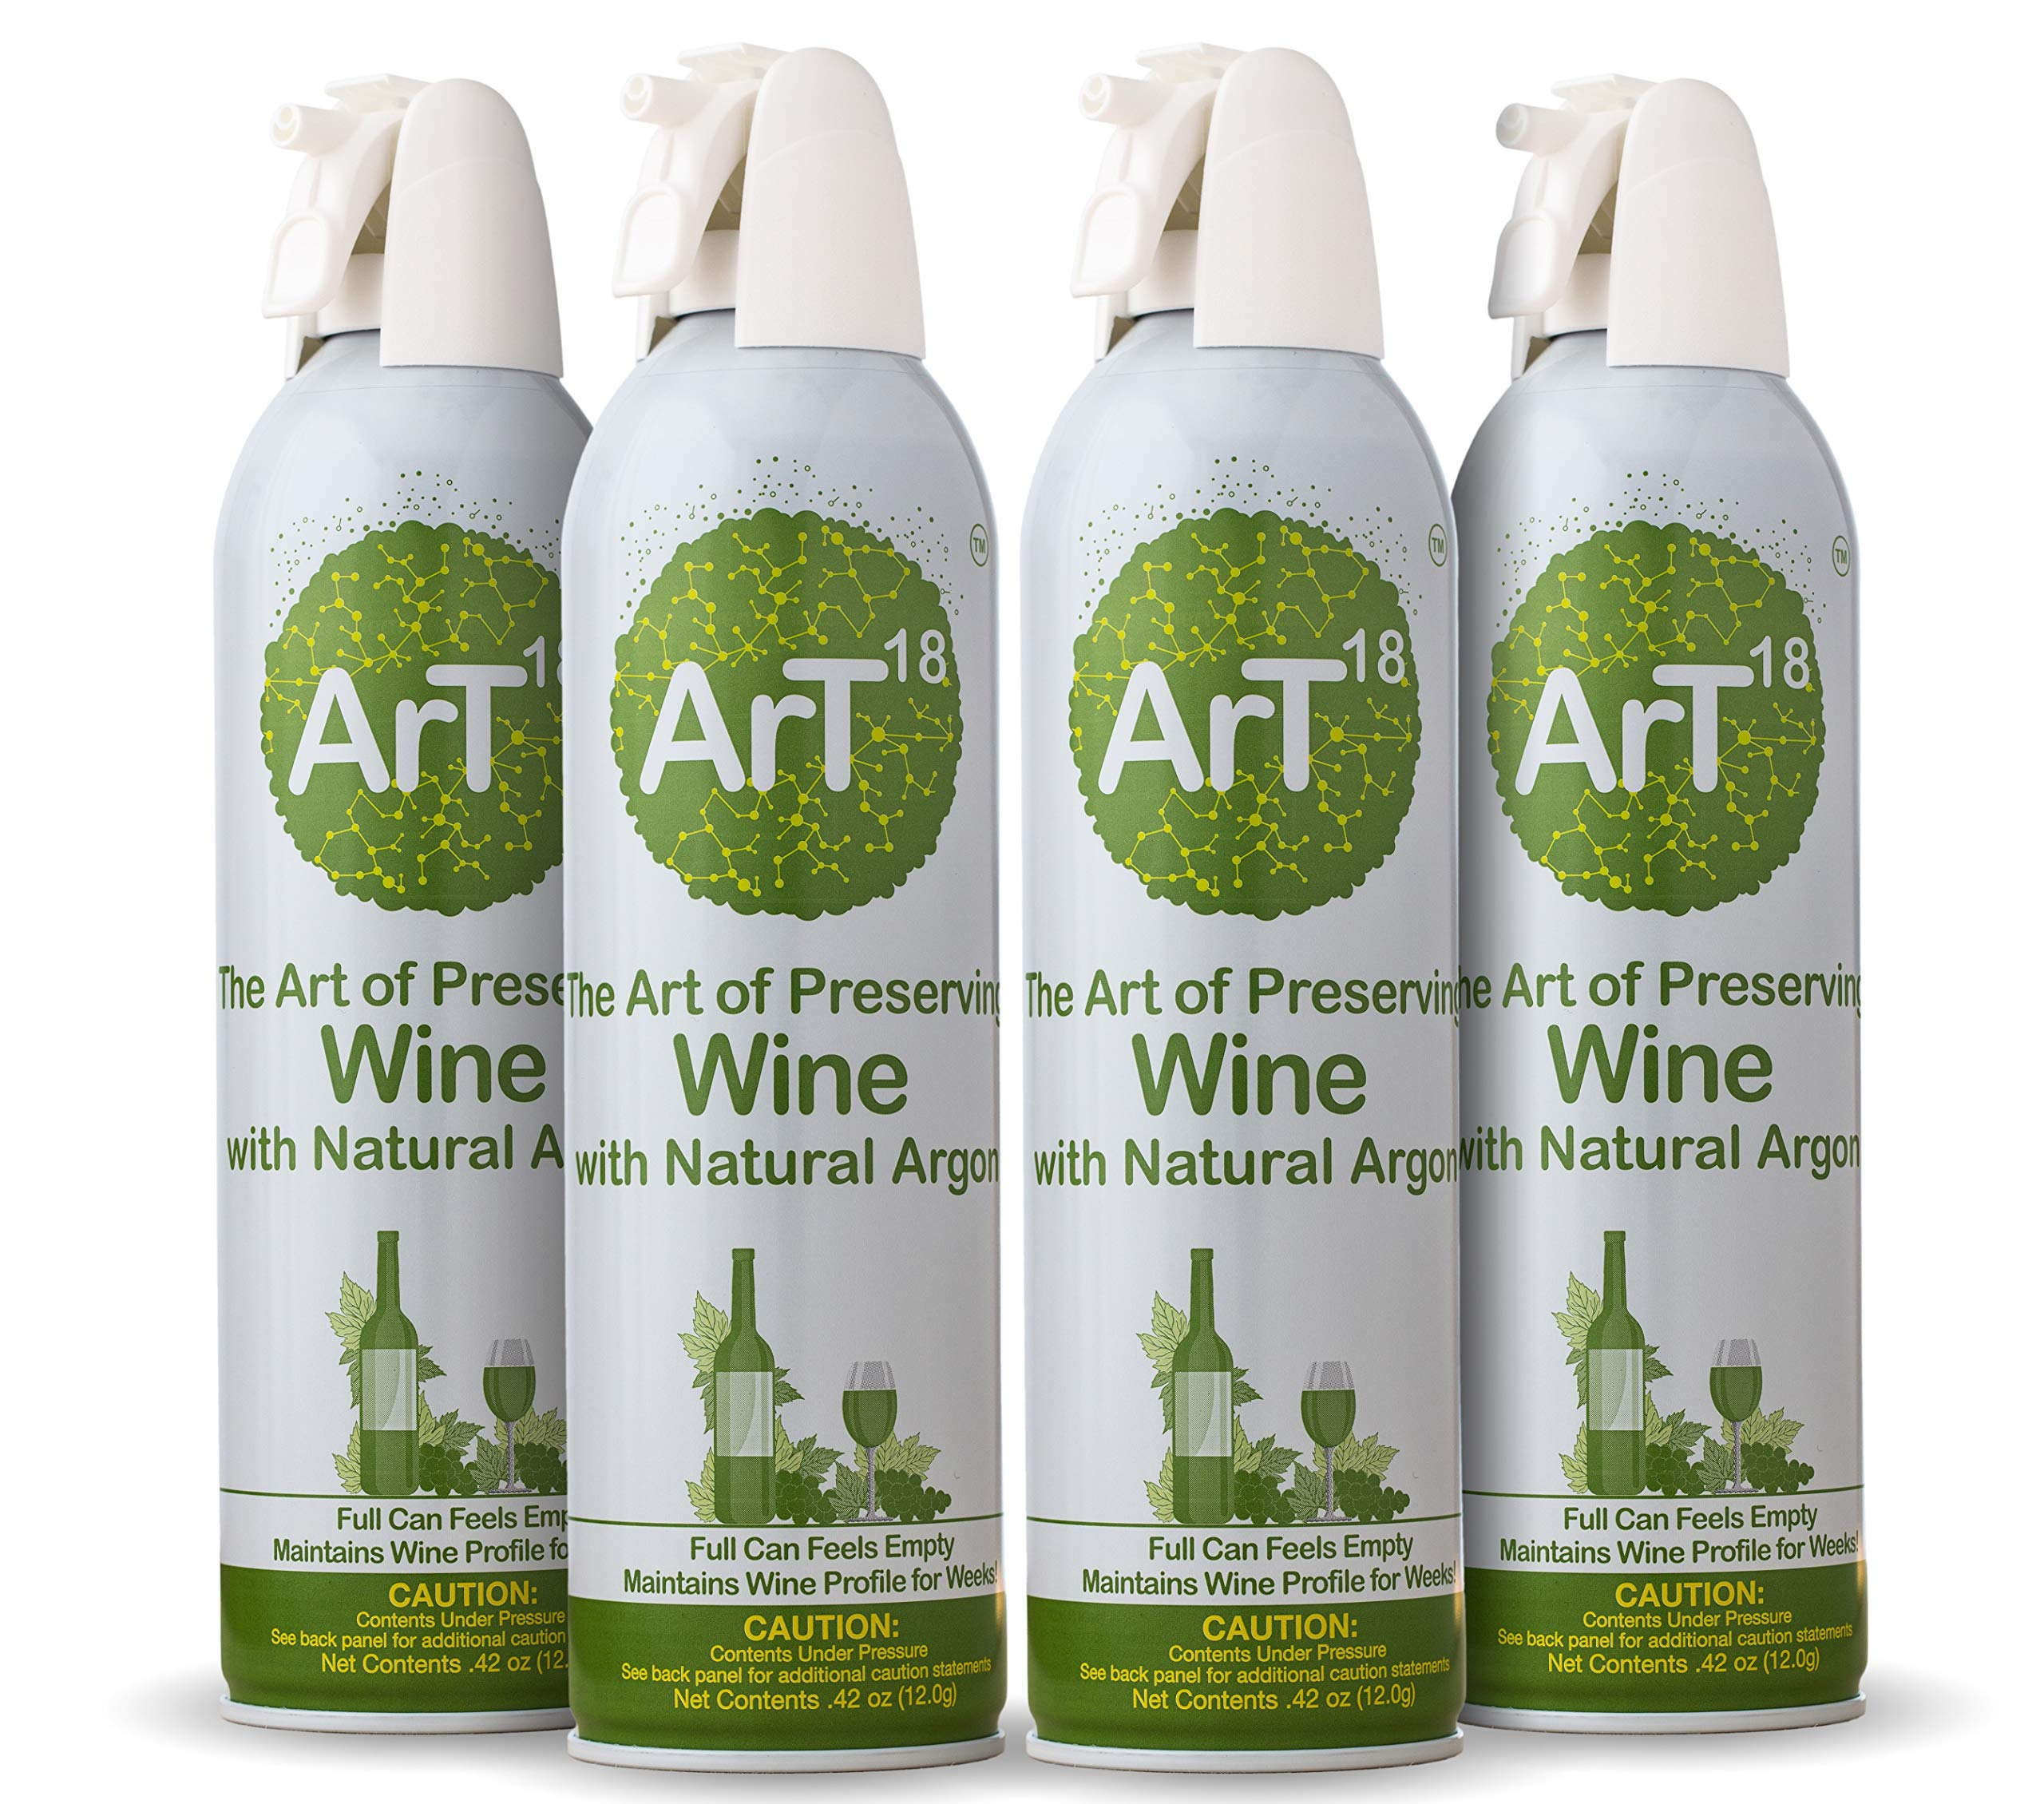 ArT Wine Saver and Bottle Stopper, Pure Argon Spray Can, Use up to 130 Times (4 Pack) by ArT Wine Preserver (Image #1)